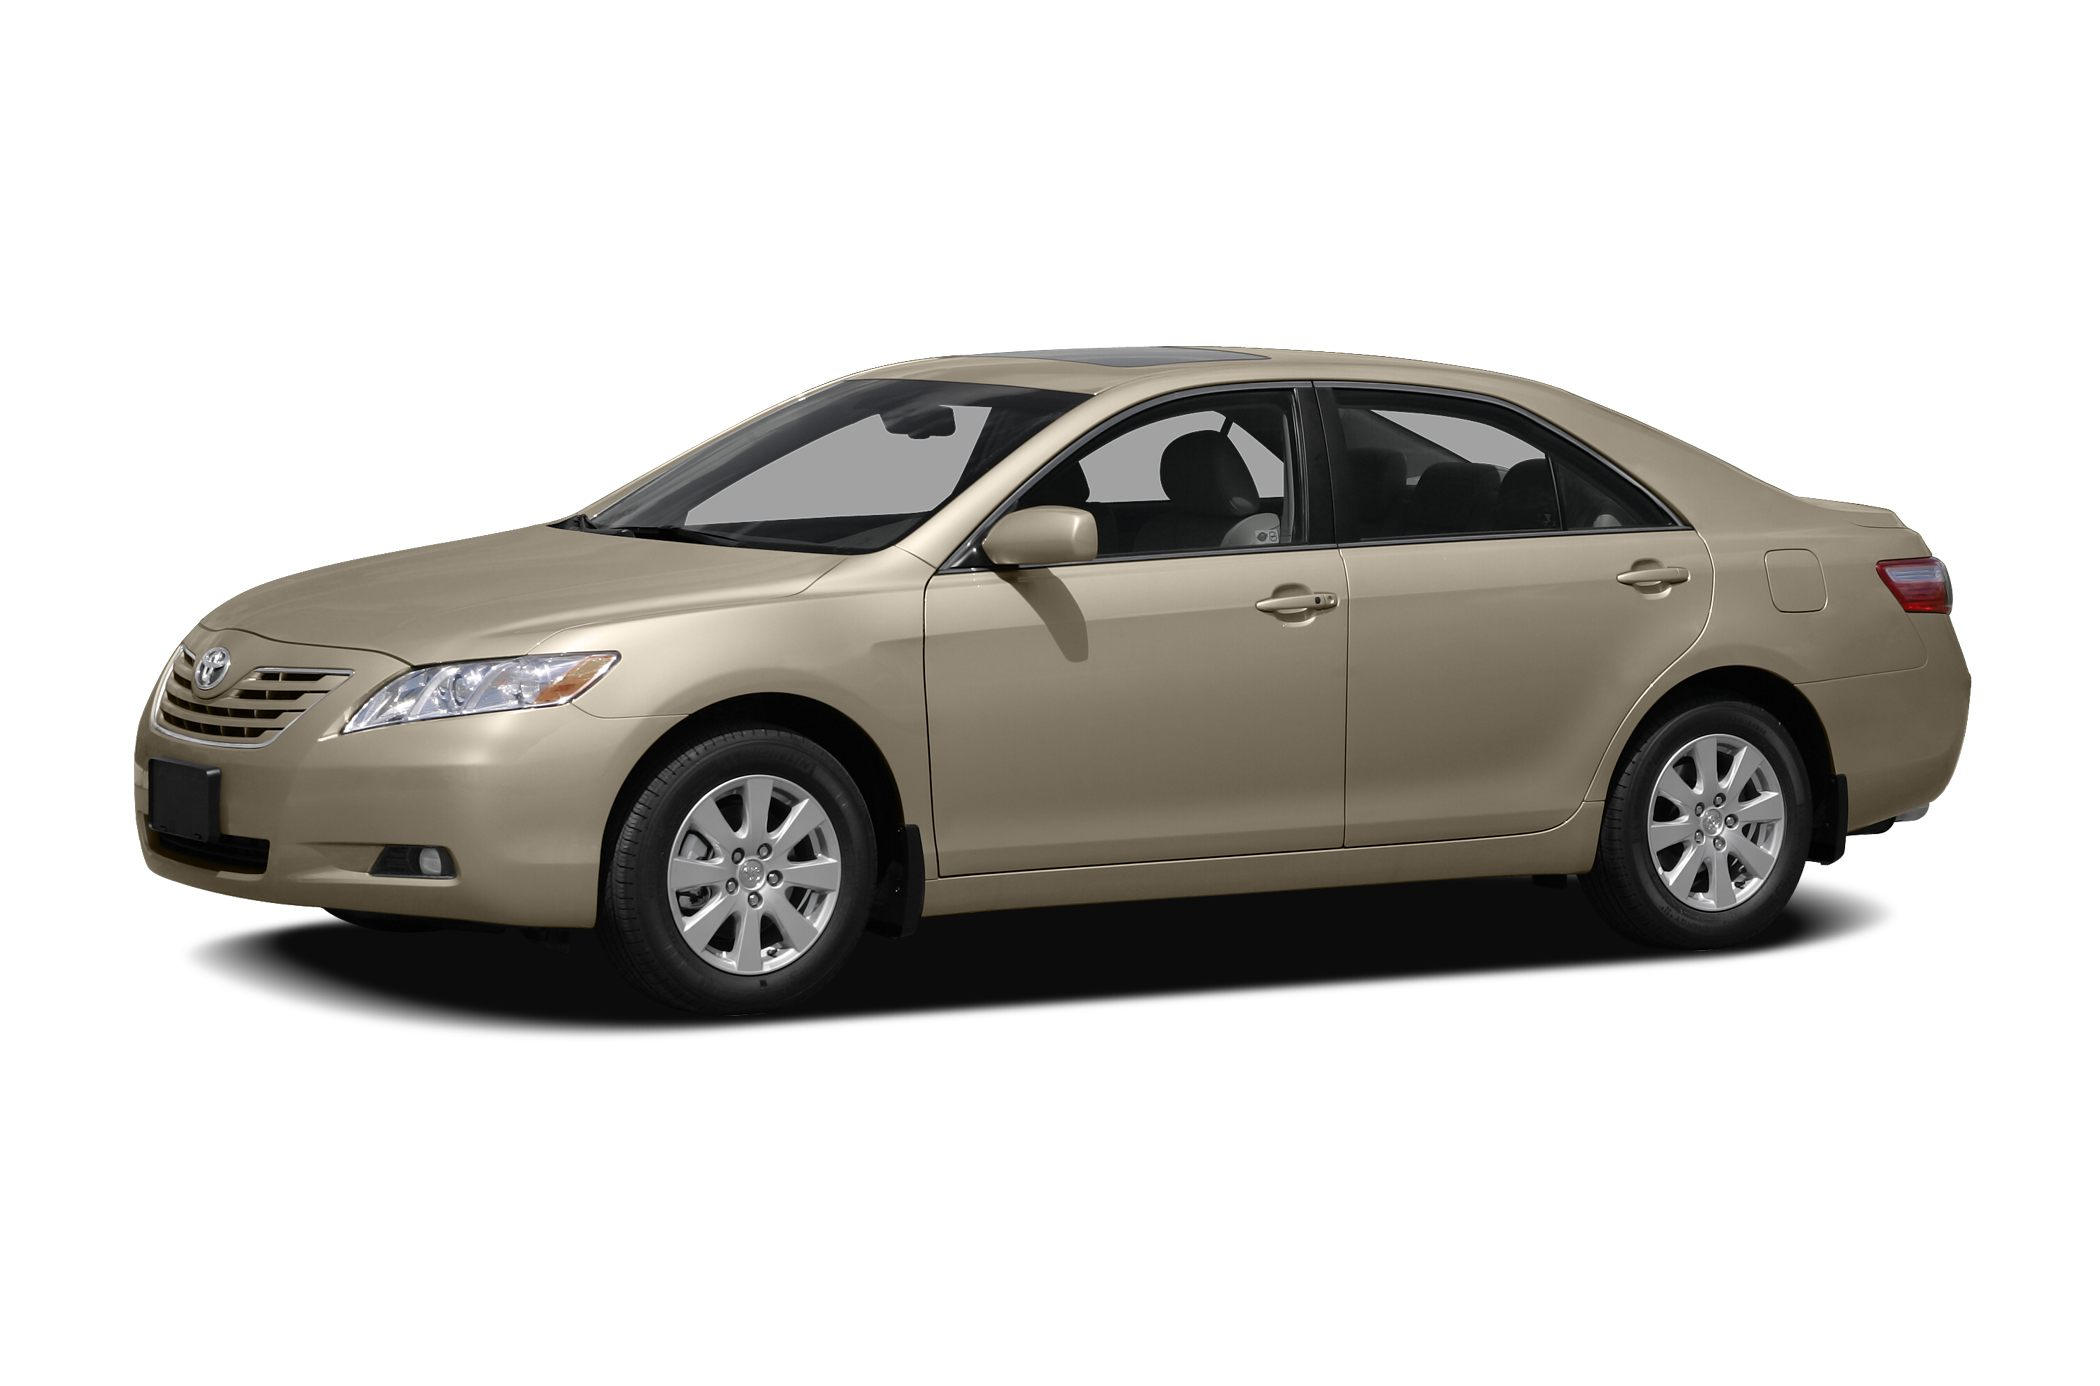 2008 Toyota Camry LE Sedan for sale in Kissimmee for $10,295 with 132,993 miles.